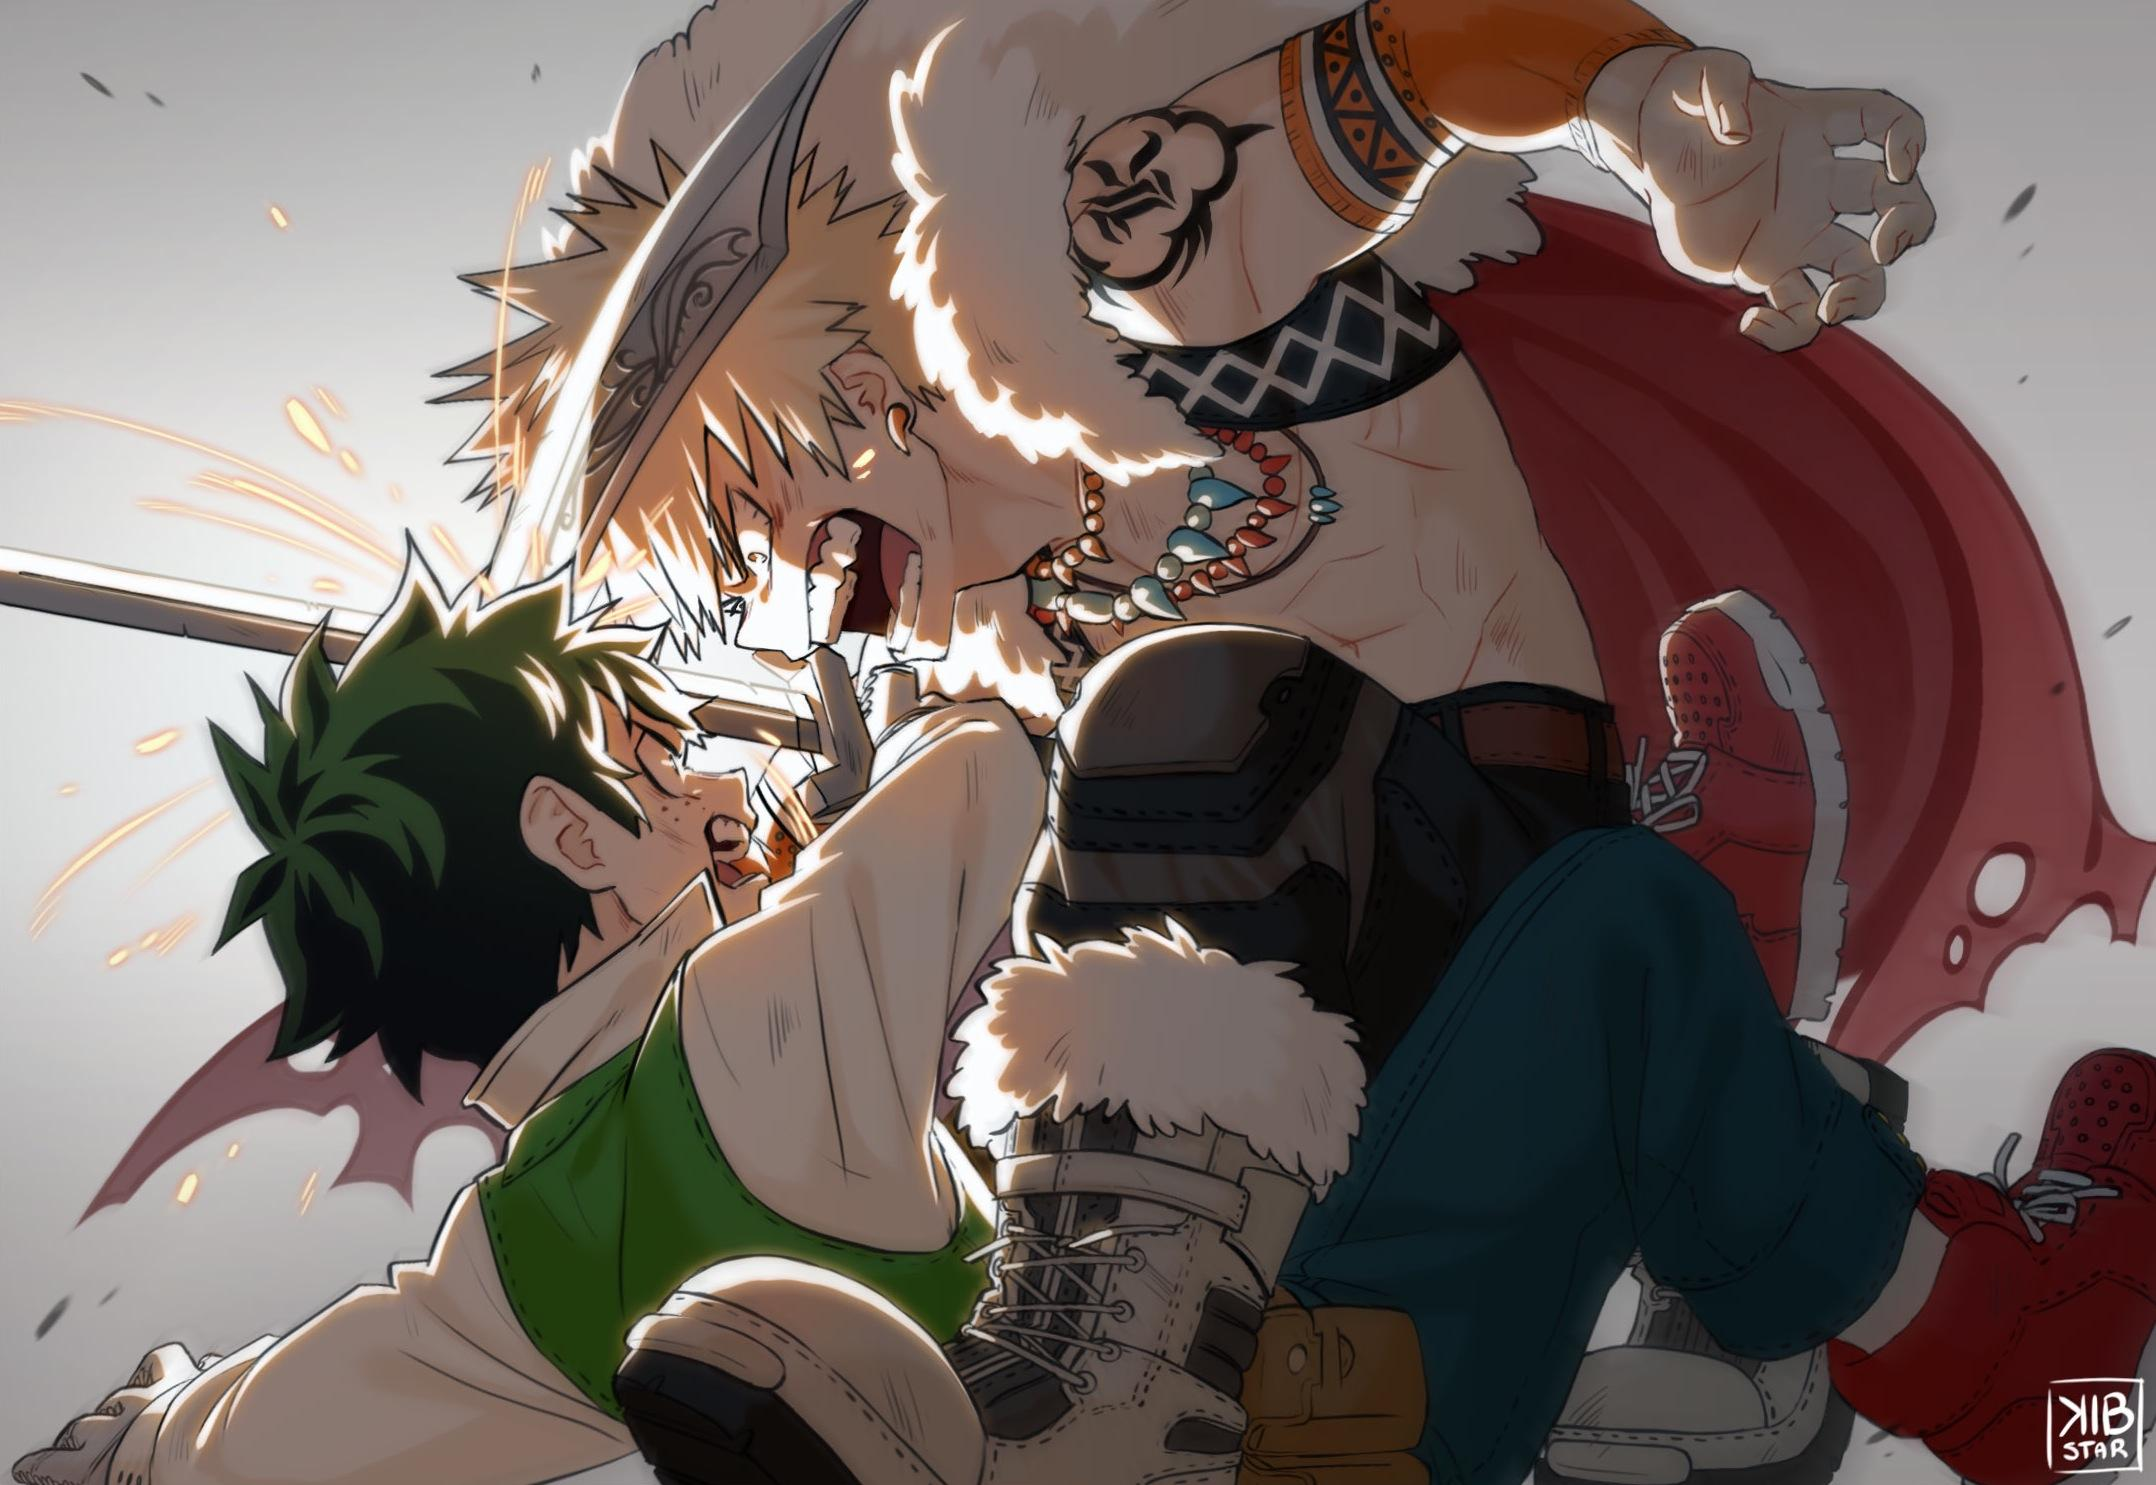 Customize your desktop, mobile phone and tablet with our wide variety of cool and interesting my hero academia wallpapers in just a few clicks! Deku vs Bakugou : BokuNoHeroAcademia